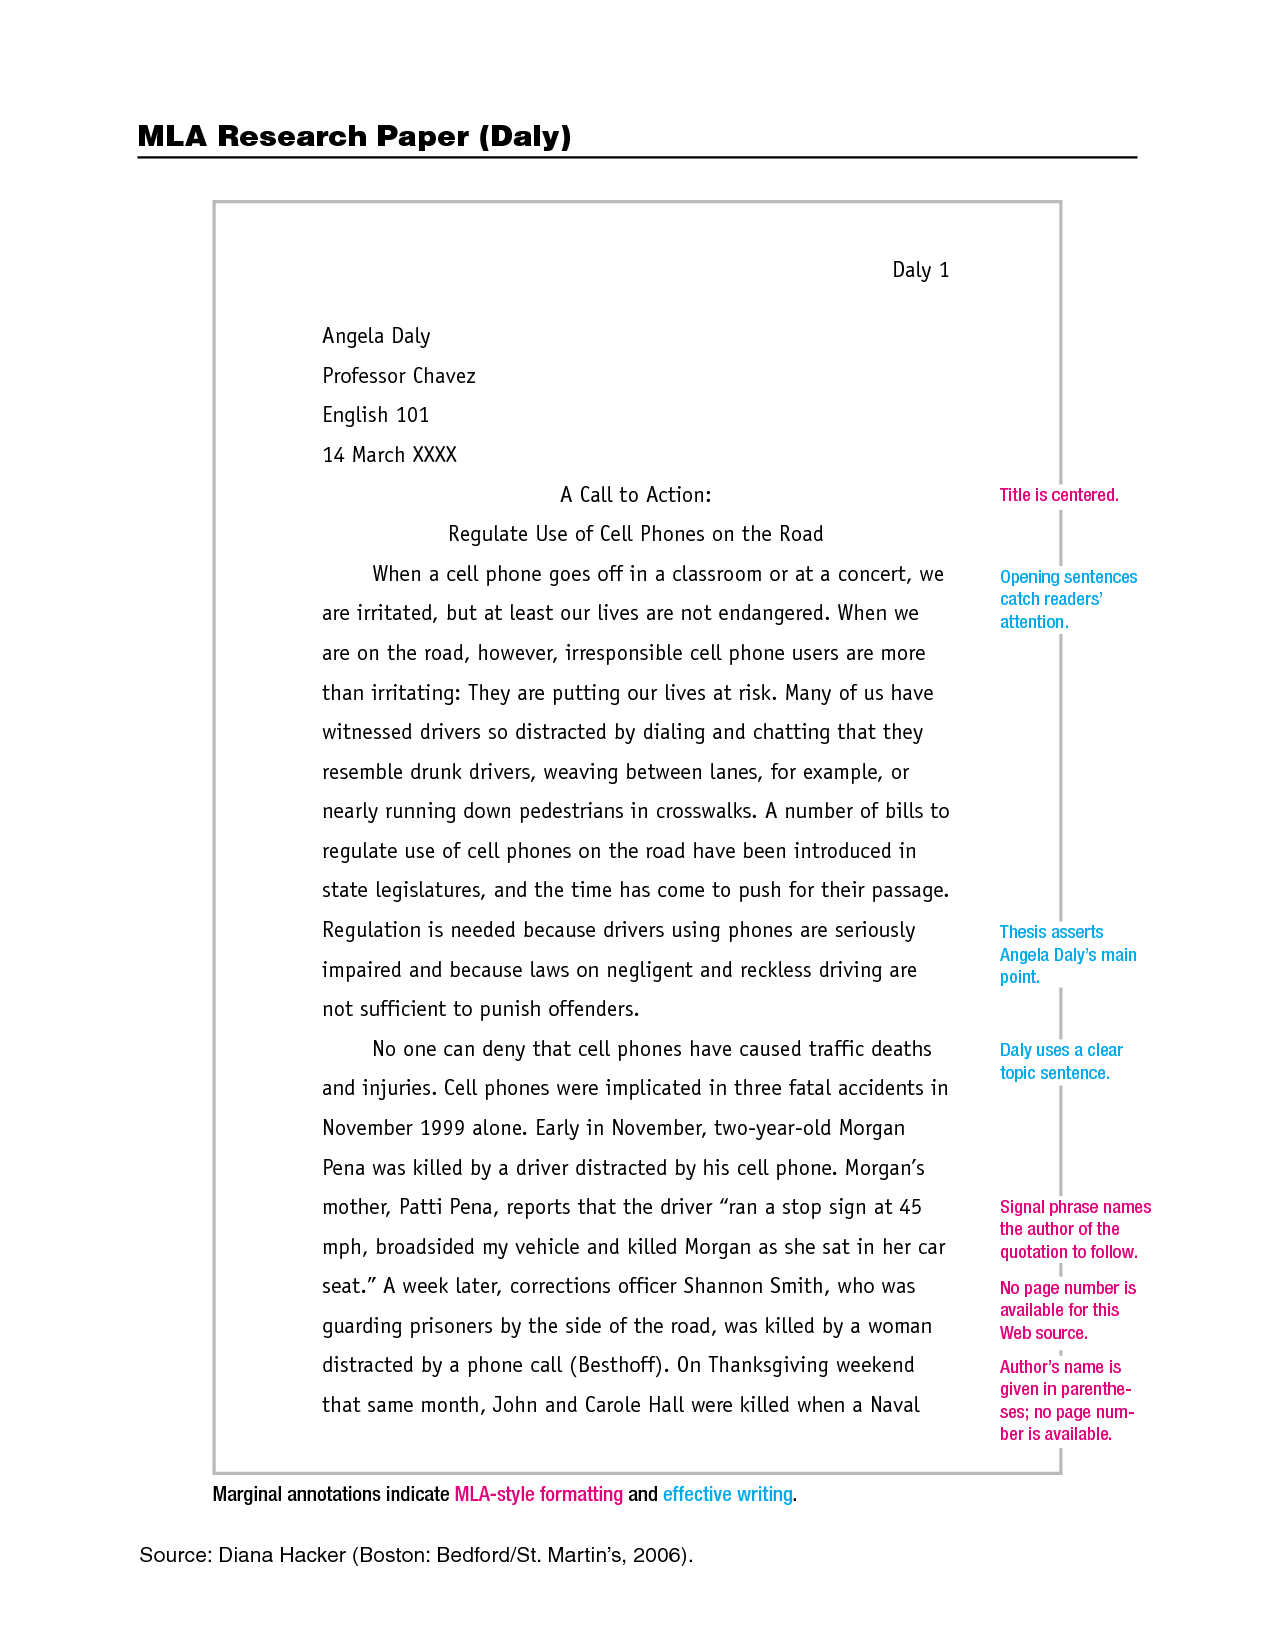 mla format essay quotation Modern language association (mla) format and documentation  if the quotation is more than four lines, start a block quotation on a new line and indent it one inch.